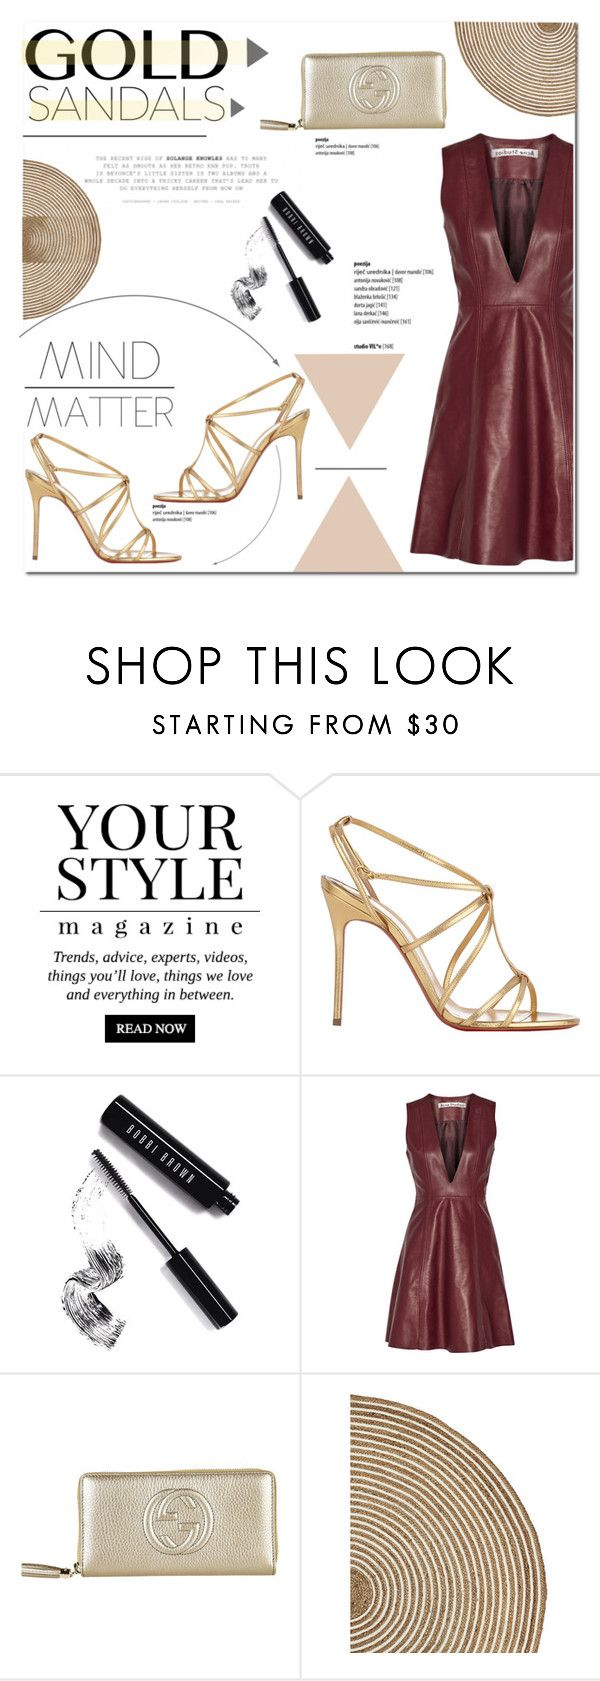 """""""GOLD SANDALS <3"""" by aryana-280 ❤ liked on Polyvore featuring Pussycat, Christian Louboutin, Bobbi Brown Cosmetics, Børn, Acne Studios, Gucci, Serena & Lily and goldsandals"""